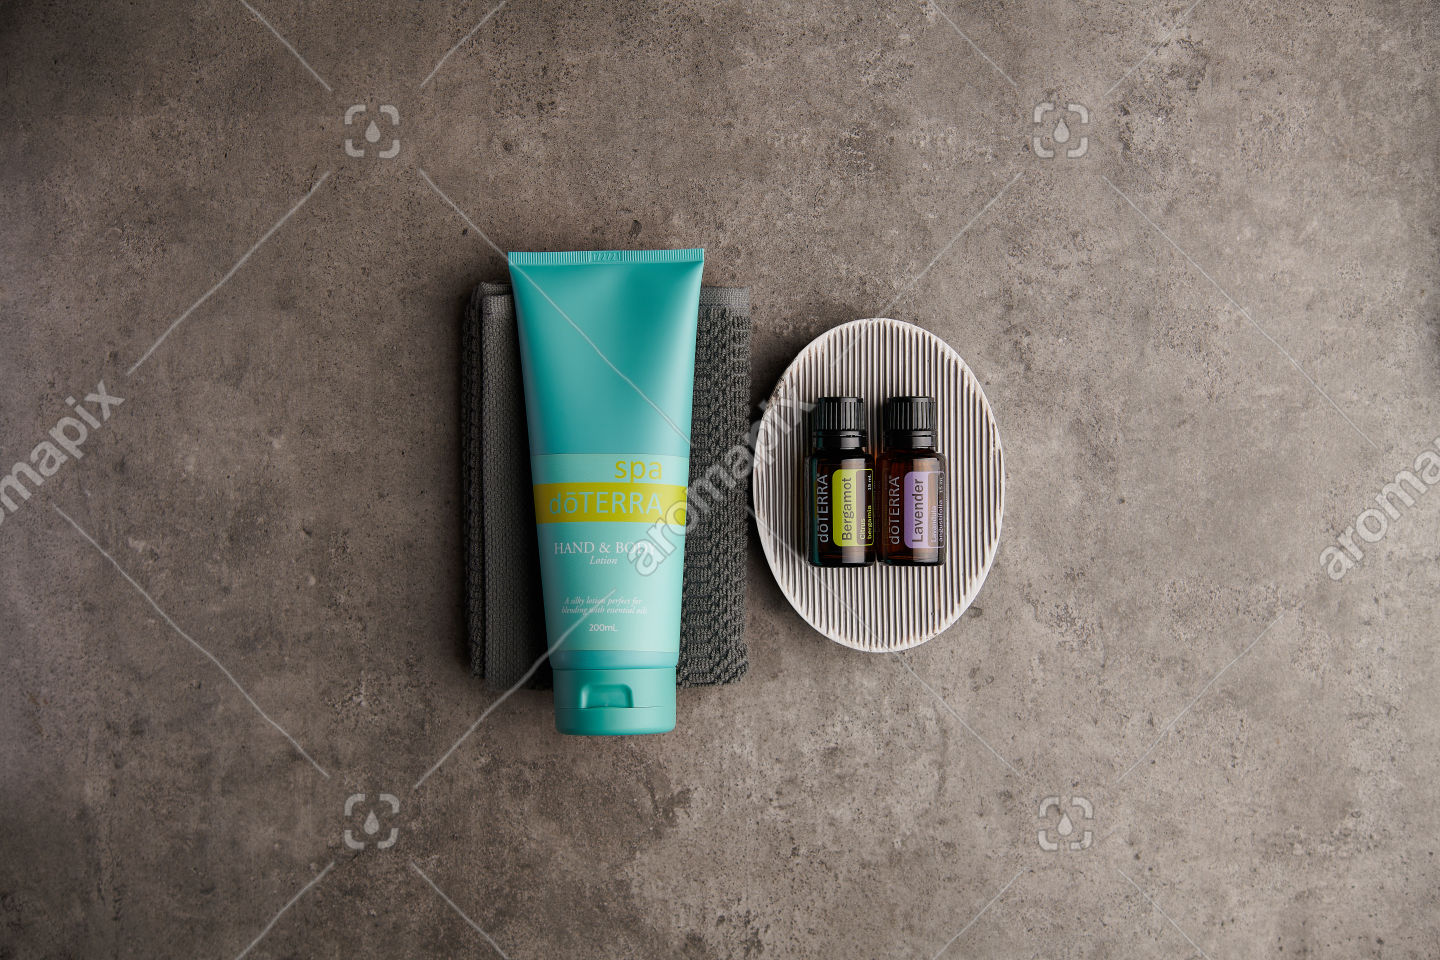 doTERRA Spa Hand and Body Lotion with Bergamot and Lavender essential oils on stone